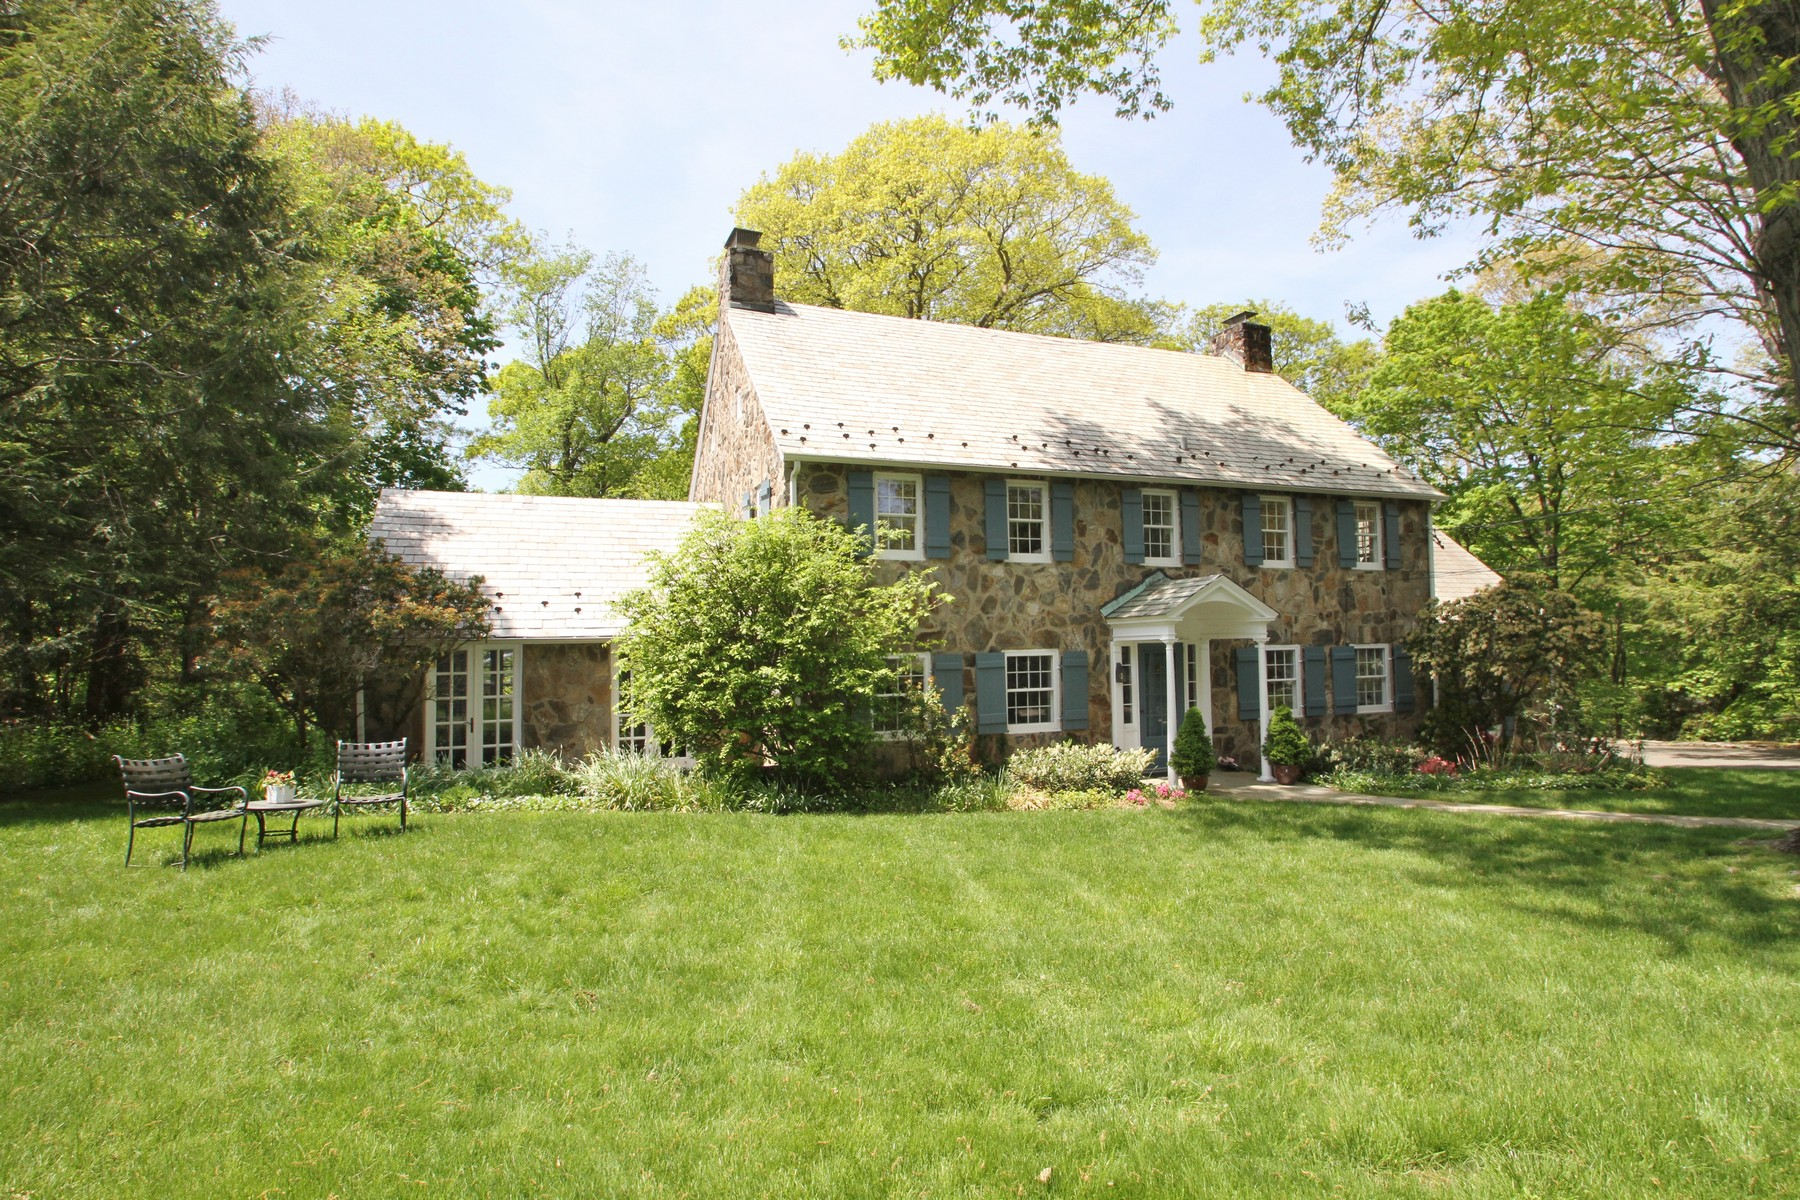 Single Family Home for Sale at Rare Opportunity In Tokeneke 3 East Trail Darien, Connecticut, 06820 United States